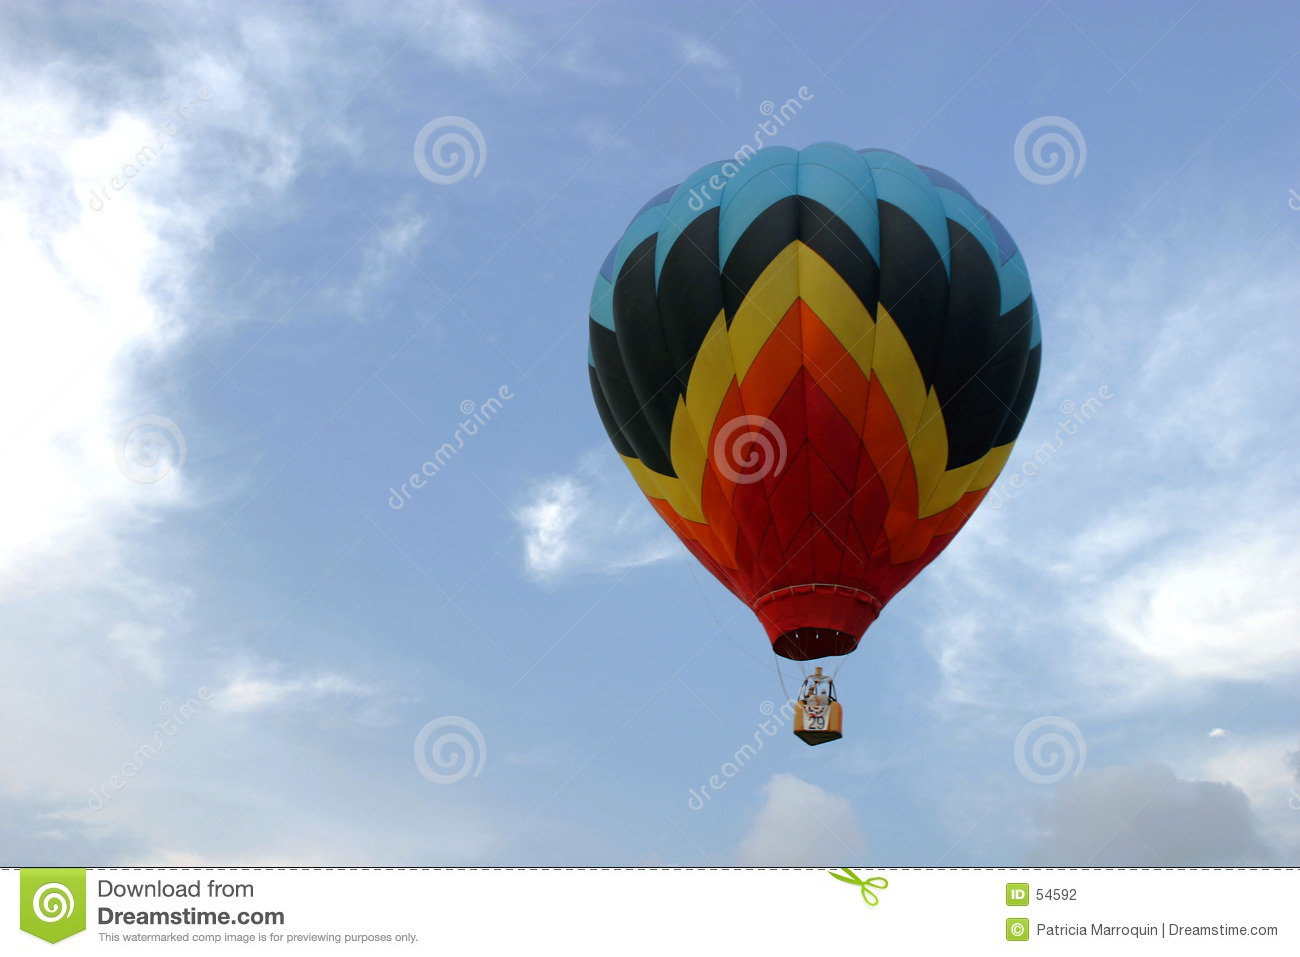 Download Ballon Montant Dans Le Ciel Photo stock - Image du nuages, flotteur: 54592